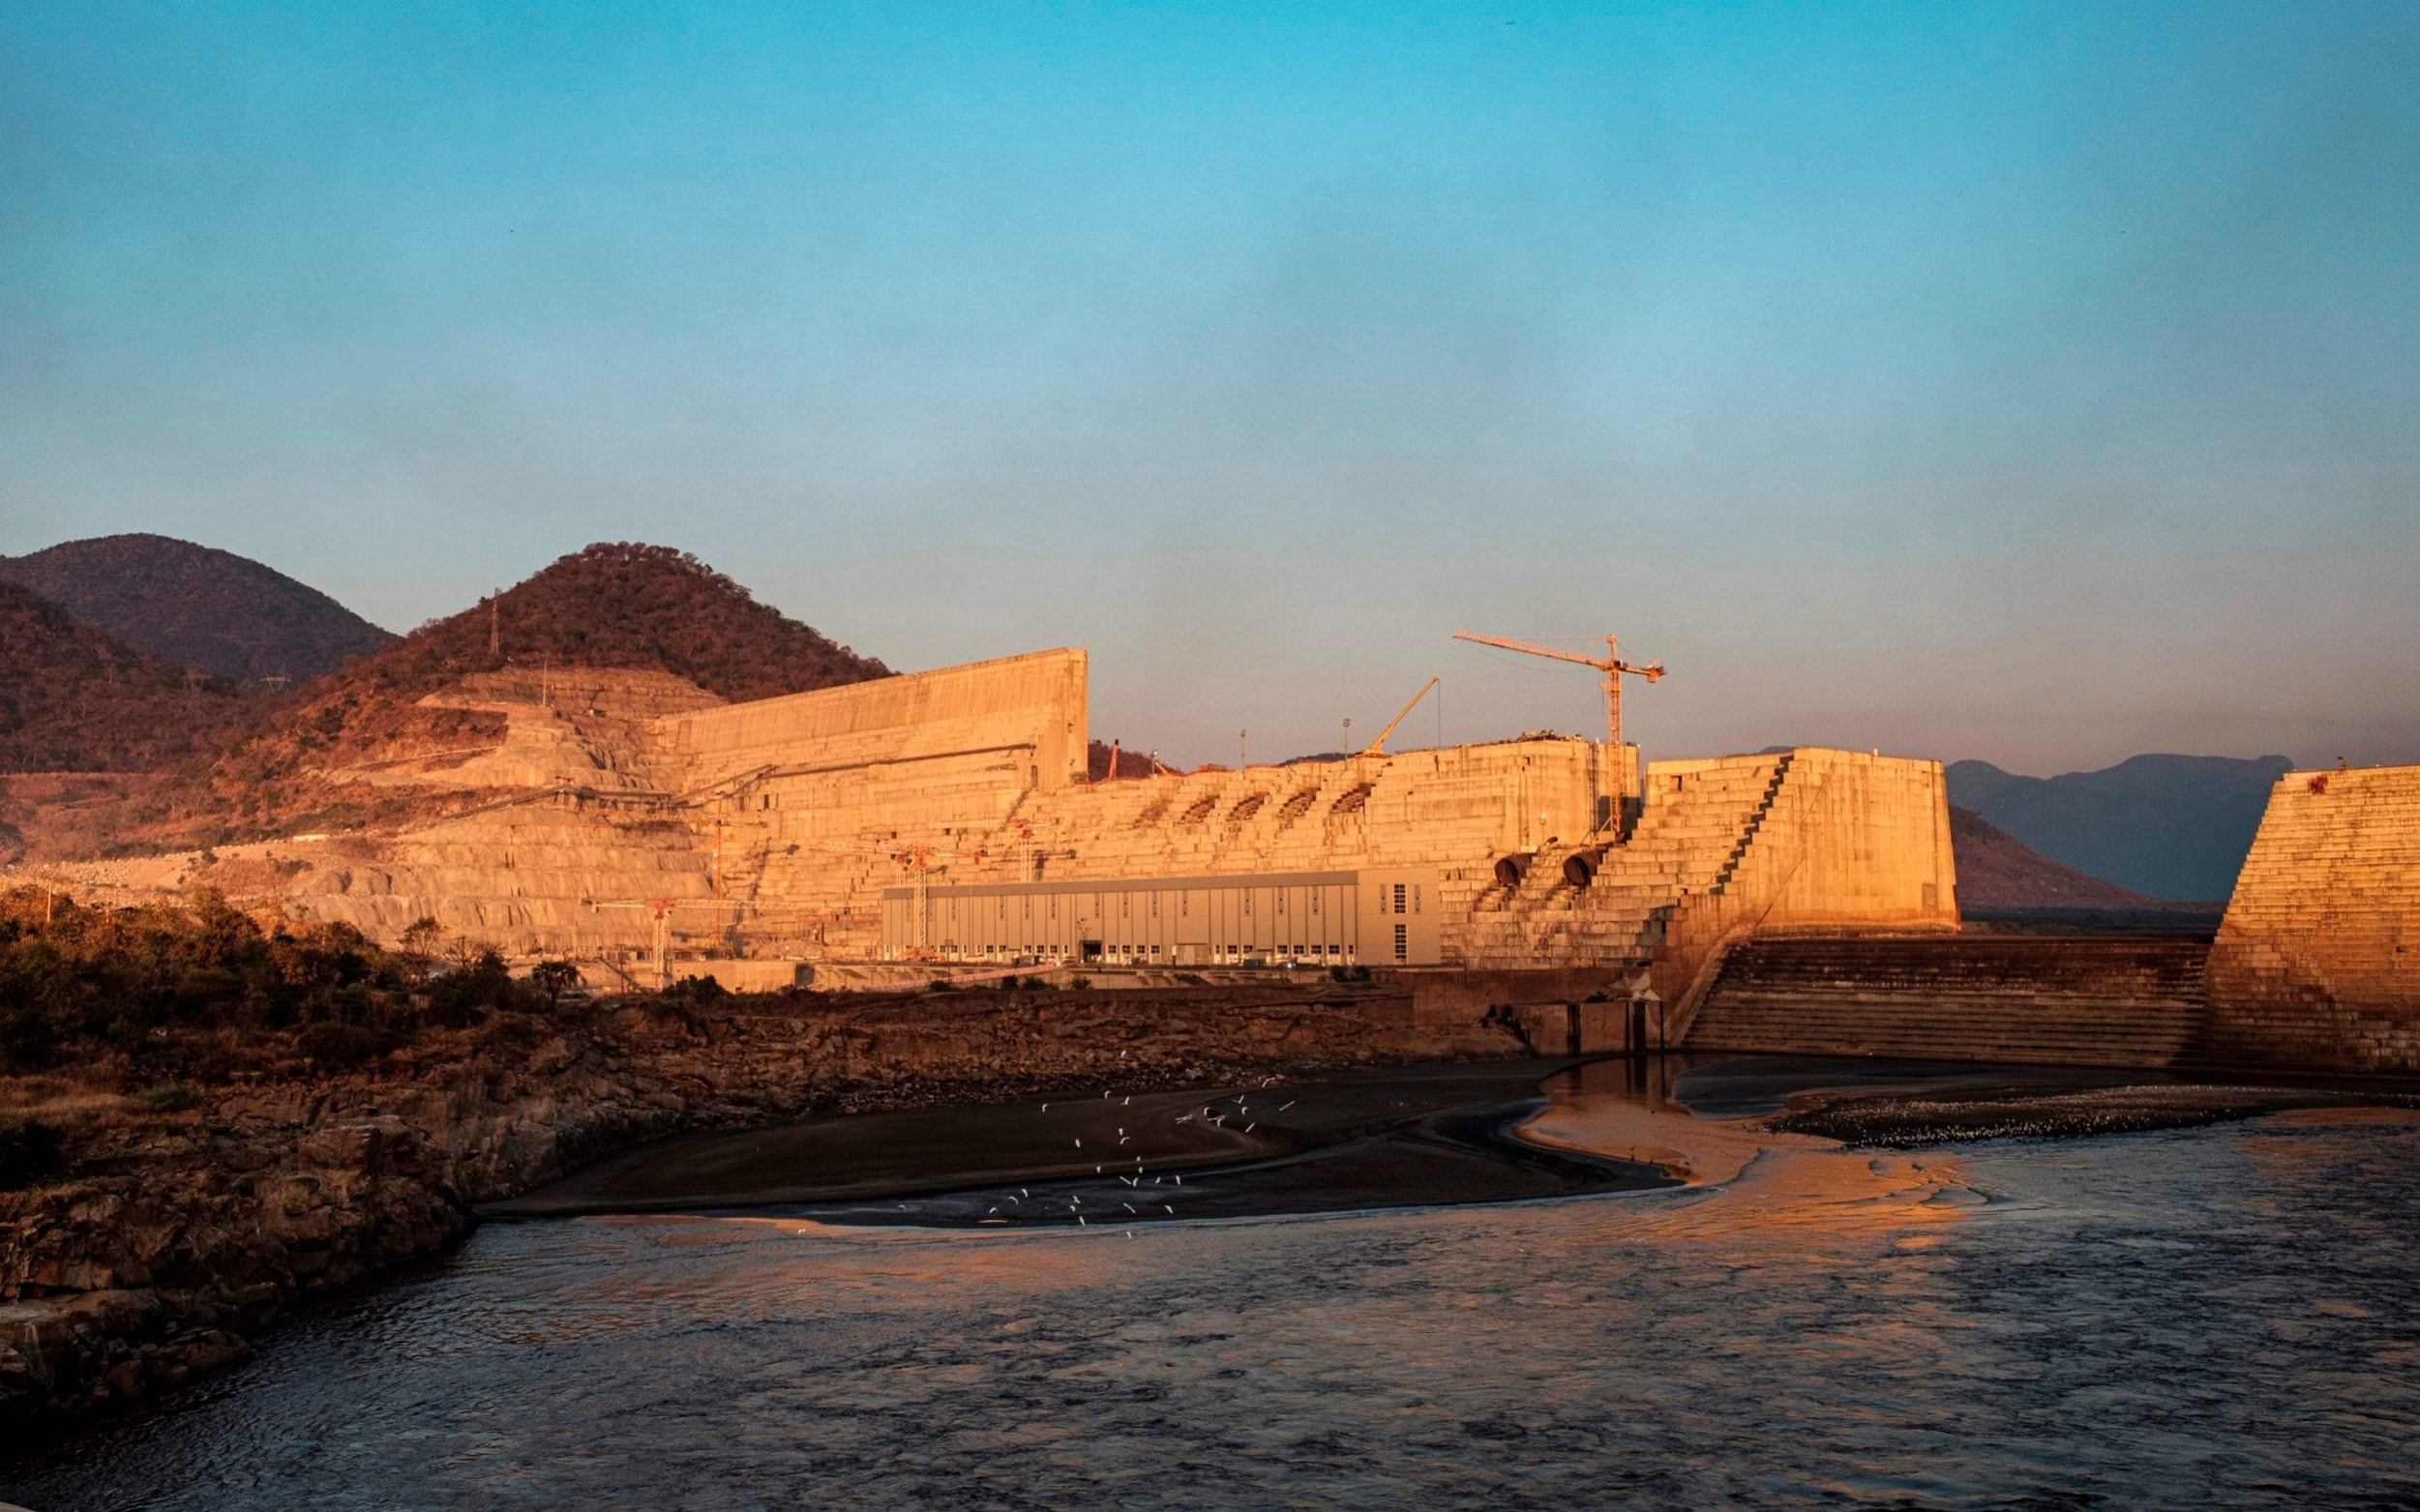 Egypt and Ethiopia reach deal on Nile mega dam that brought threats of war